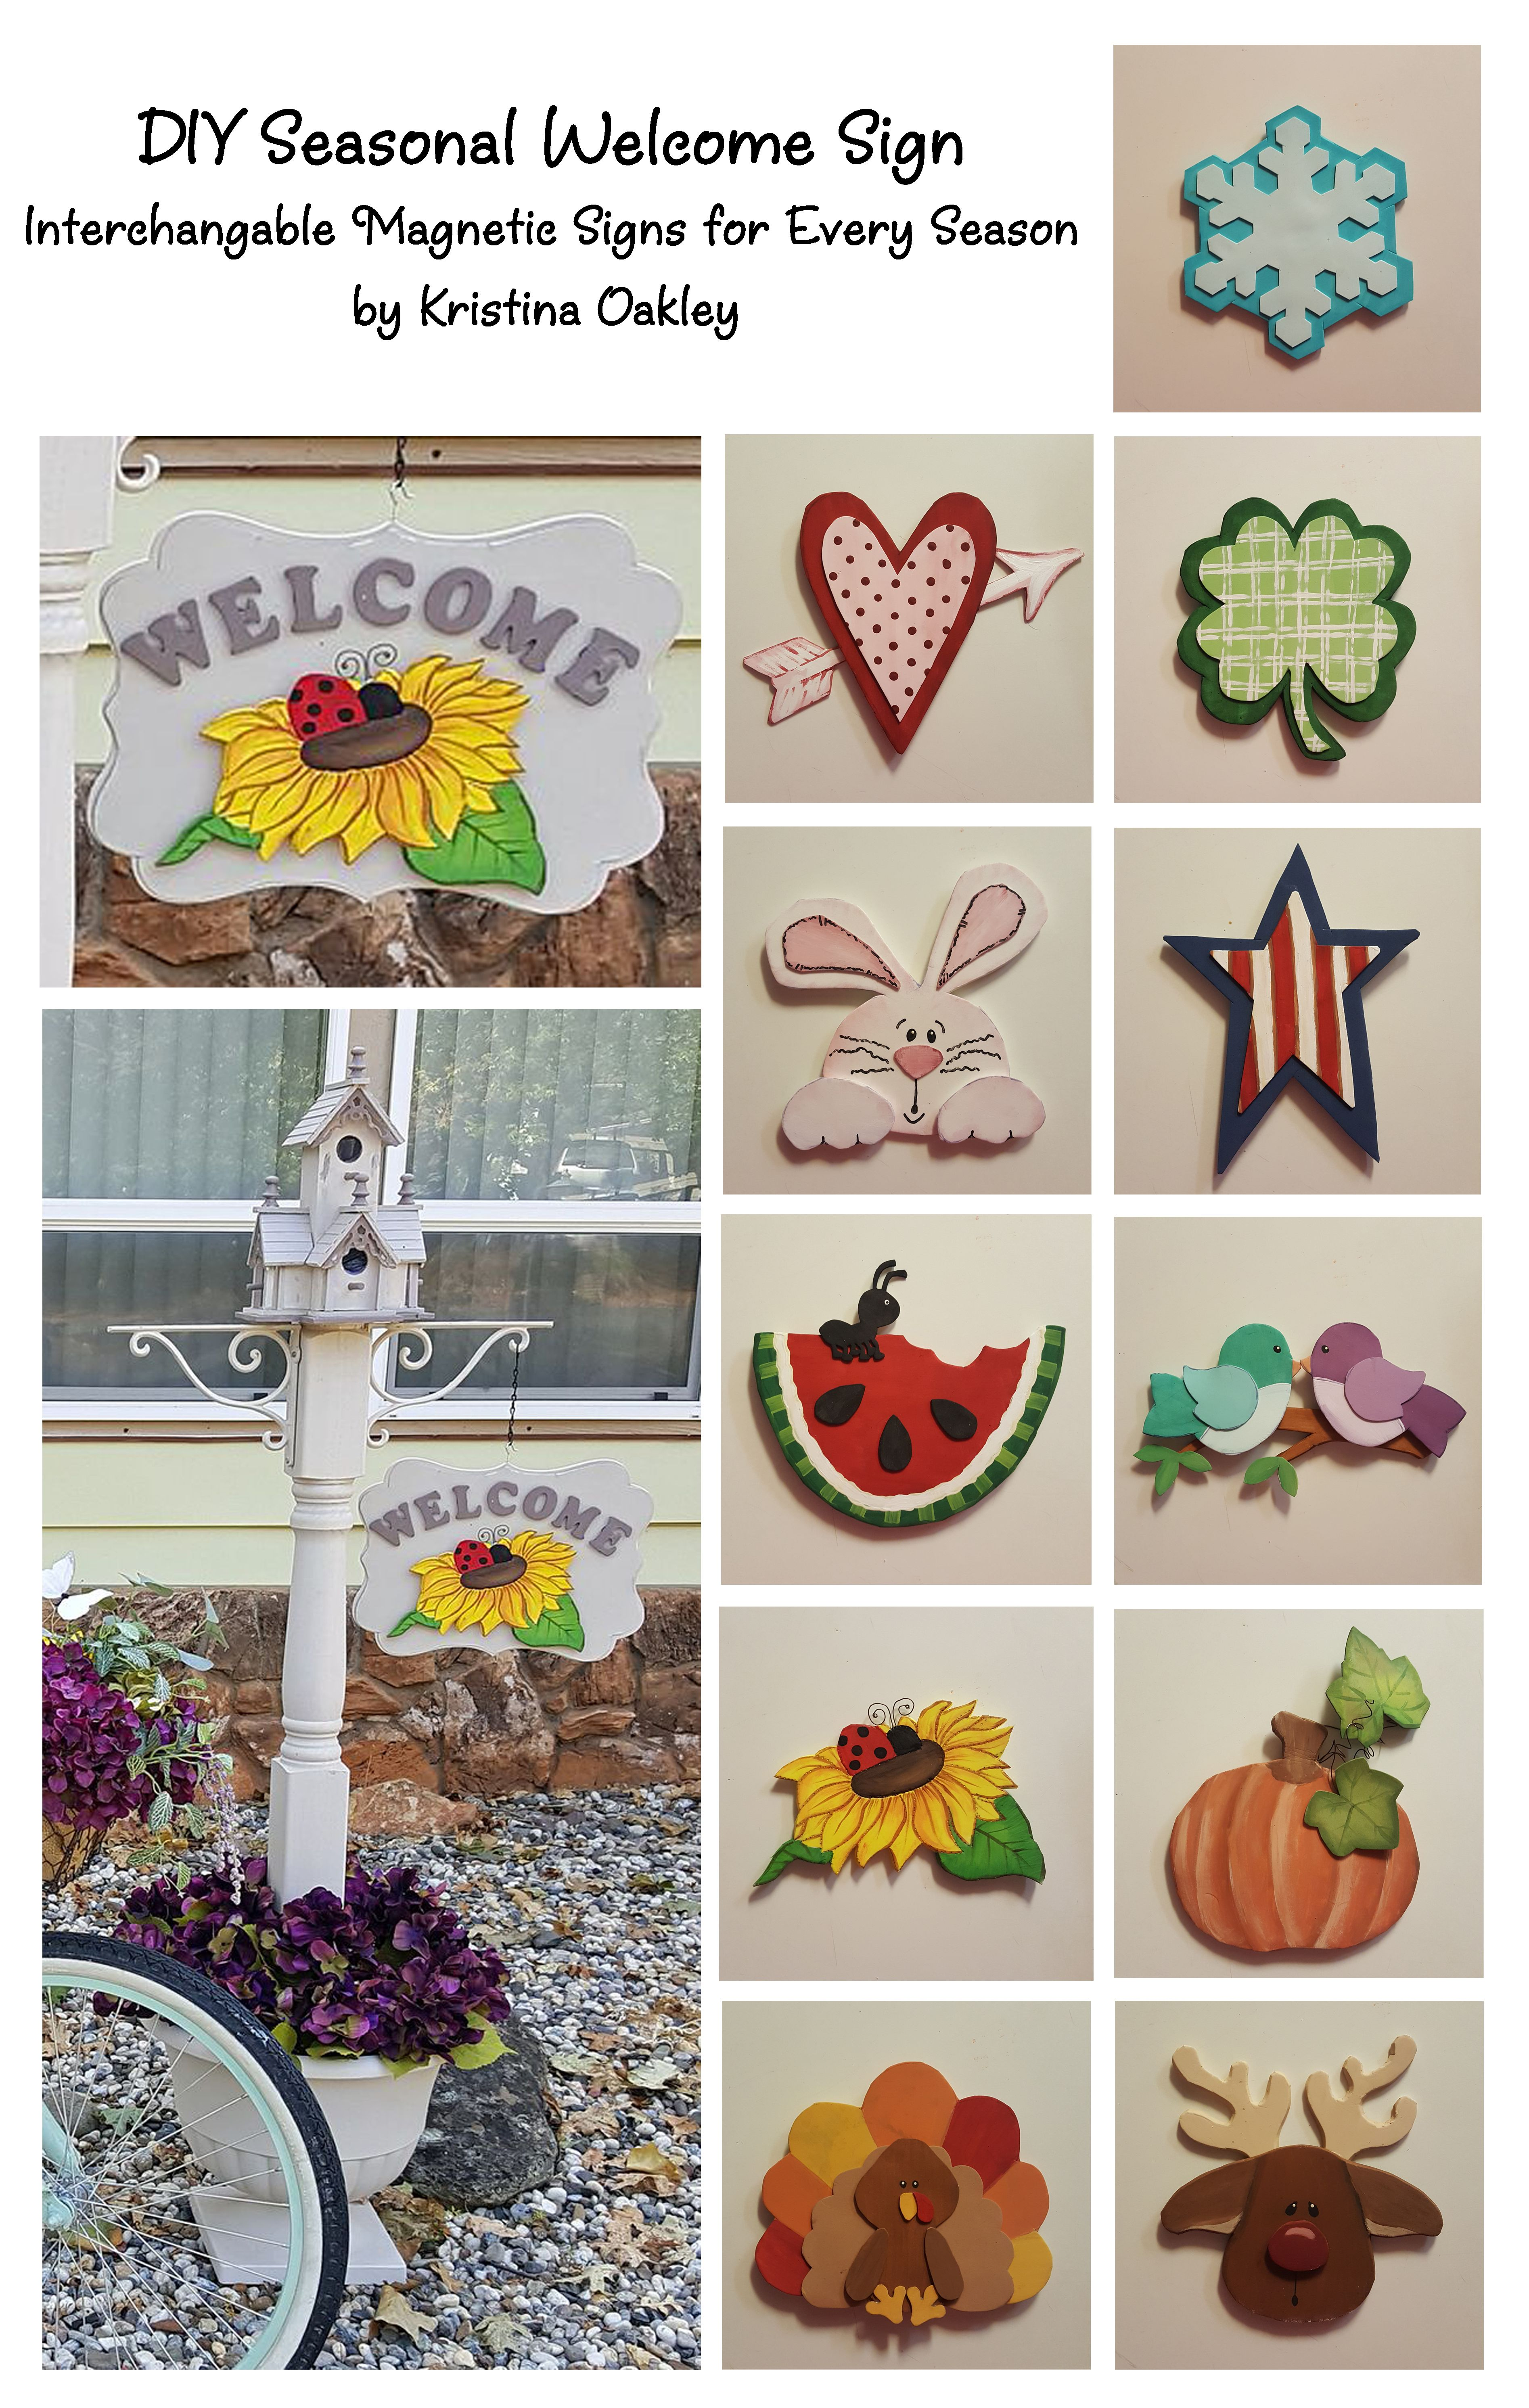 Diy Magnetic Seasonal Welcome Sign By Kristina Oakley 1st I Diy Ed The Post In A Large Planter Topped With A Birdhouse Add Porch Signs Welcome Sign Crafts